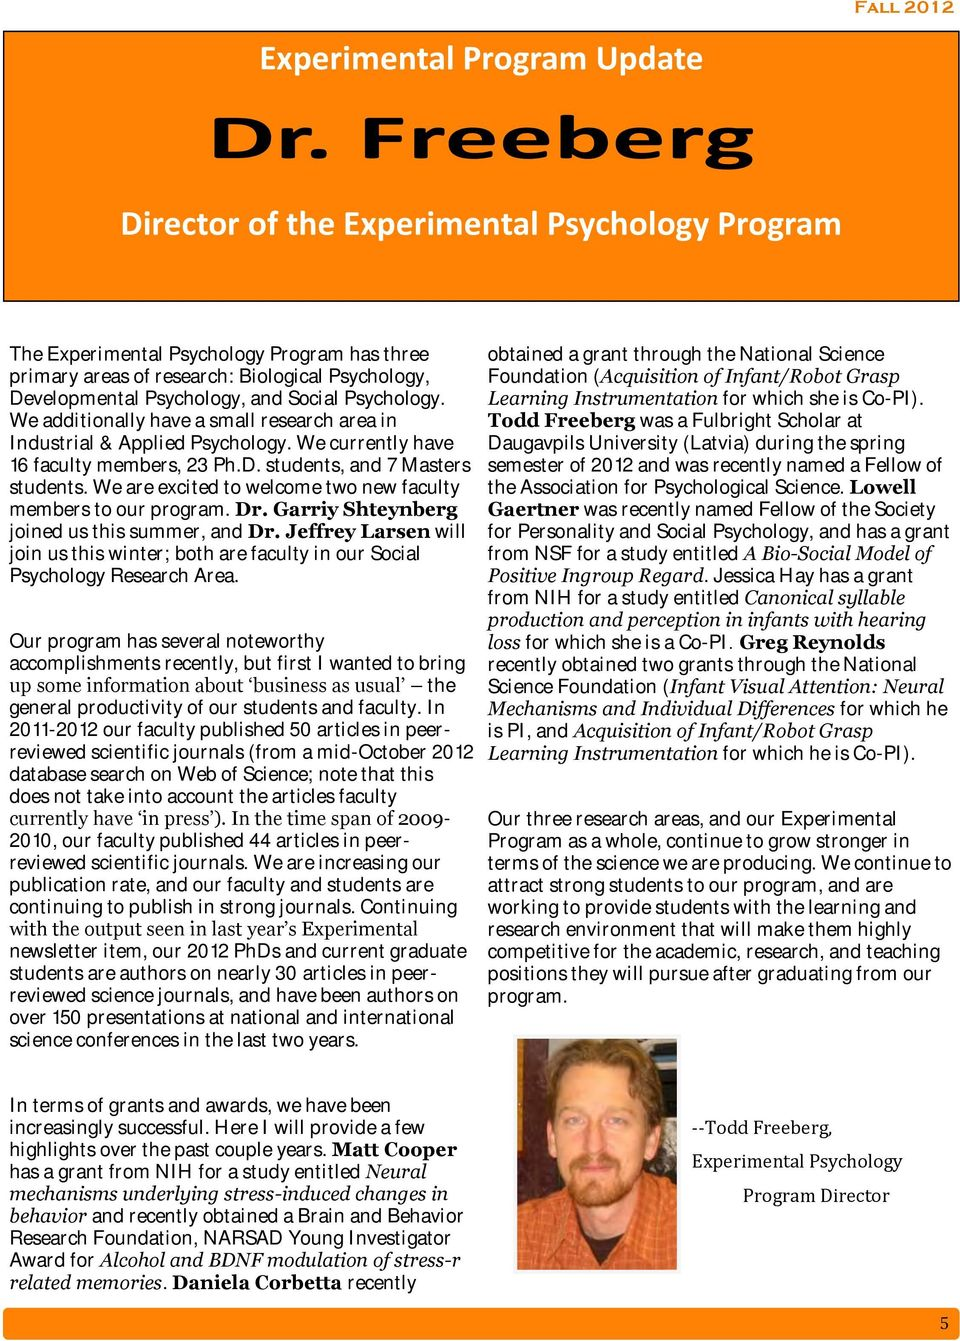 Psychology. We additionally have a small research area in Industrial & Applied Psychology. We currently have 16 faculty members, 23 Ph.D. students, and 7 Masters students.